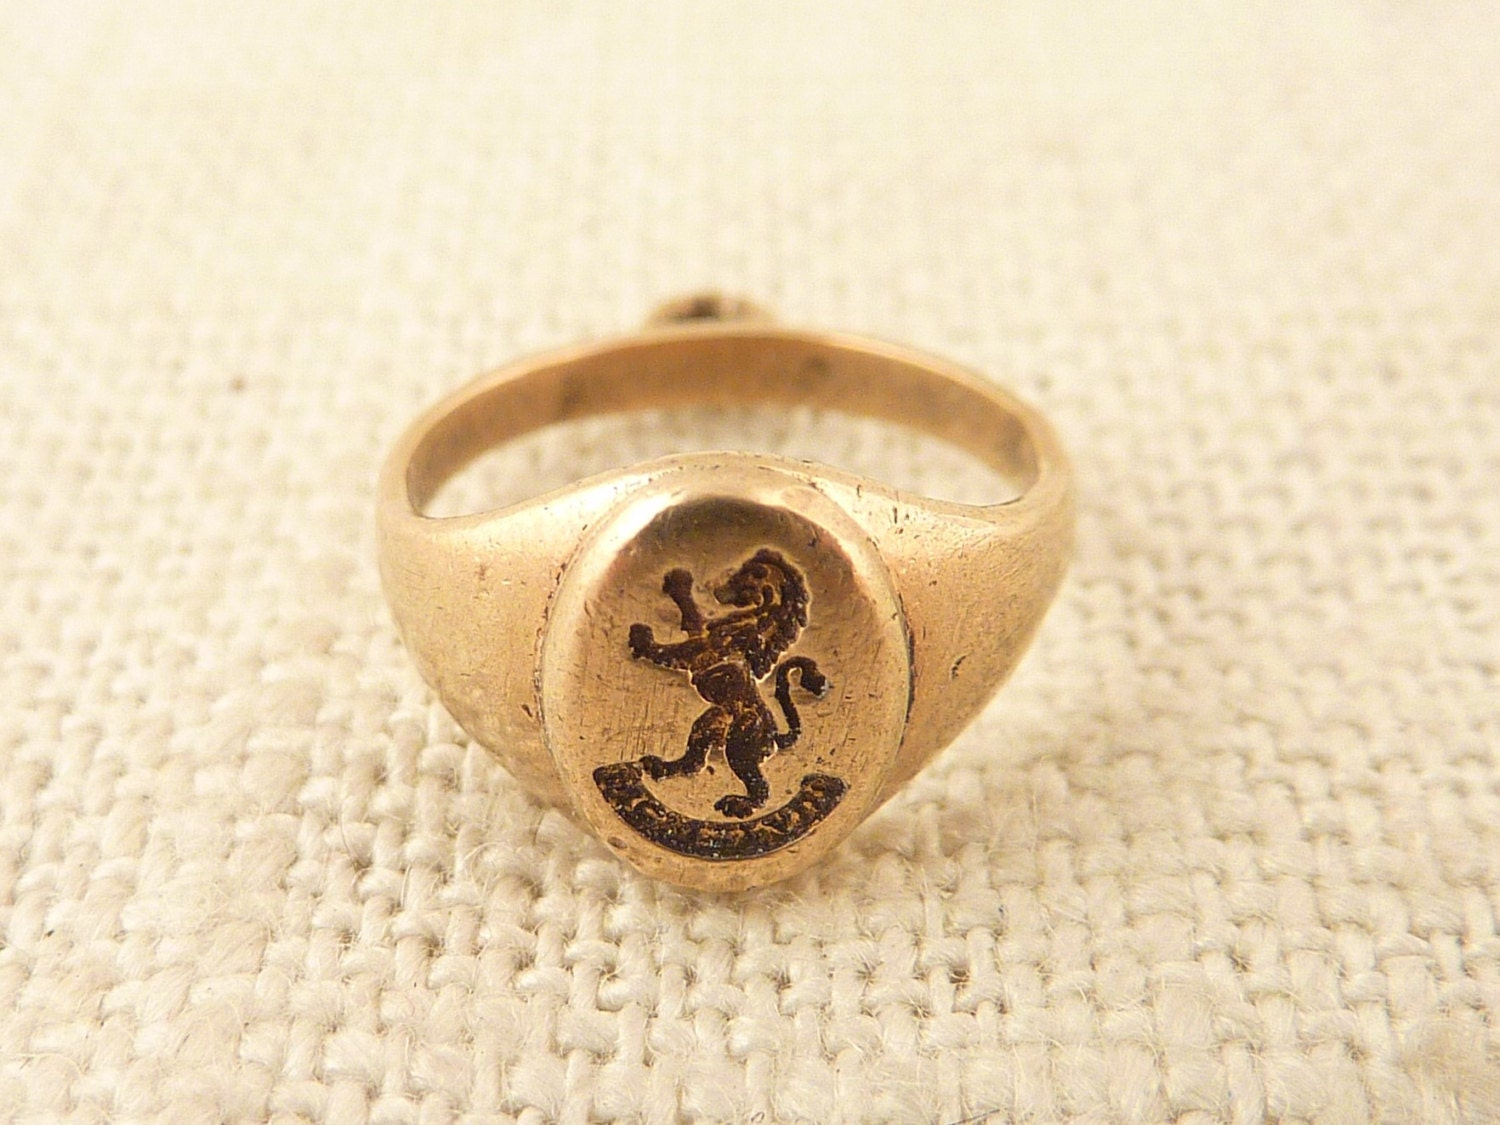 antique 10k gold class ring charm with engraved